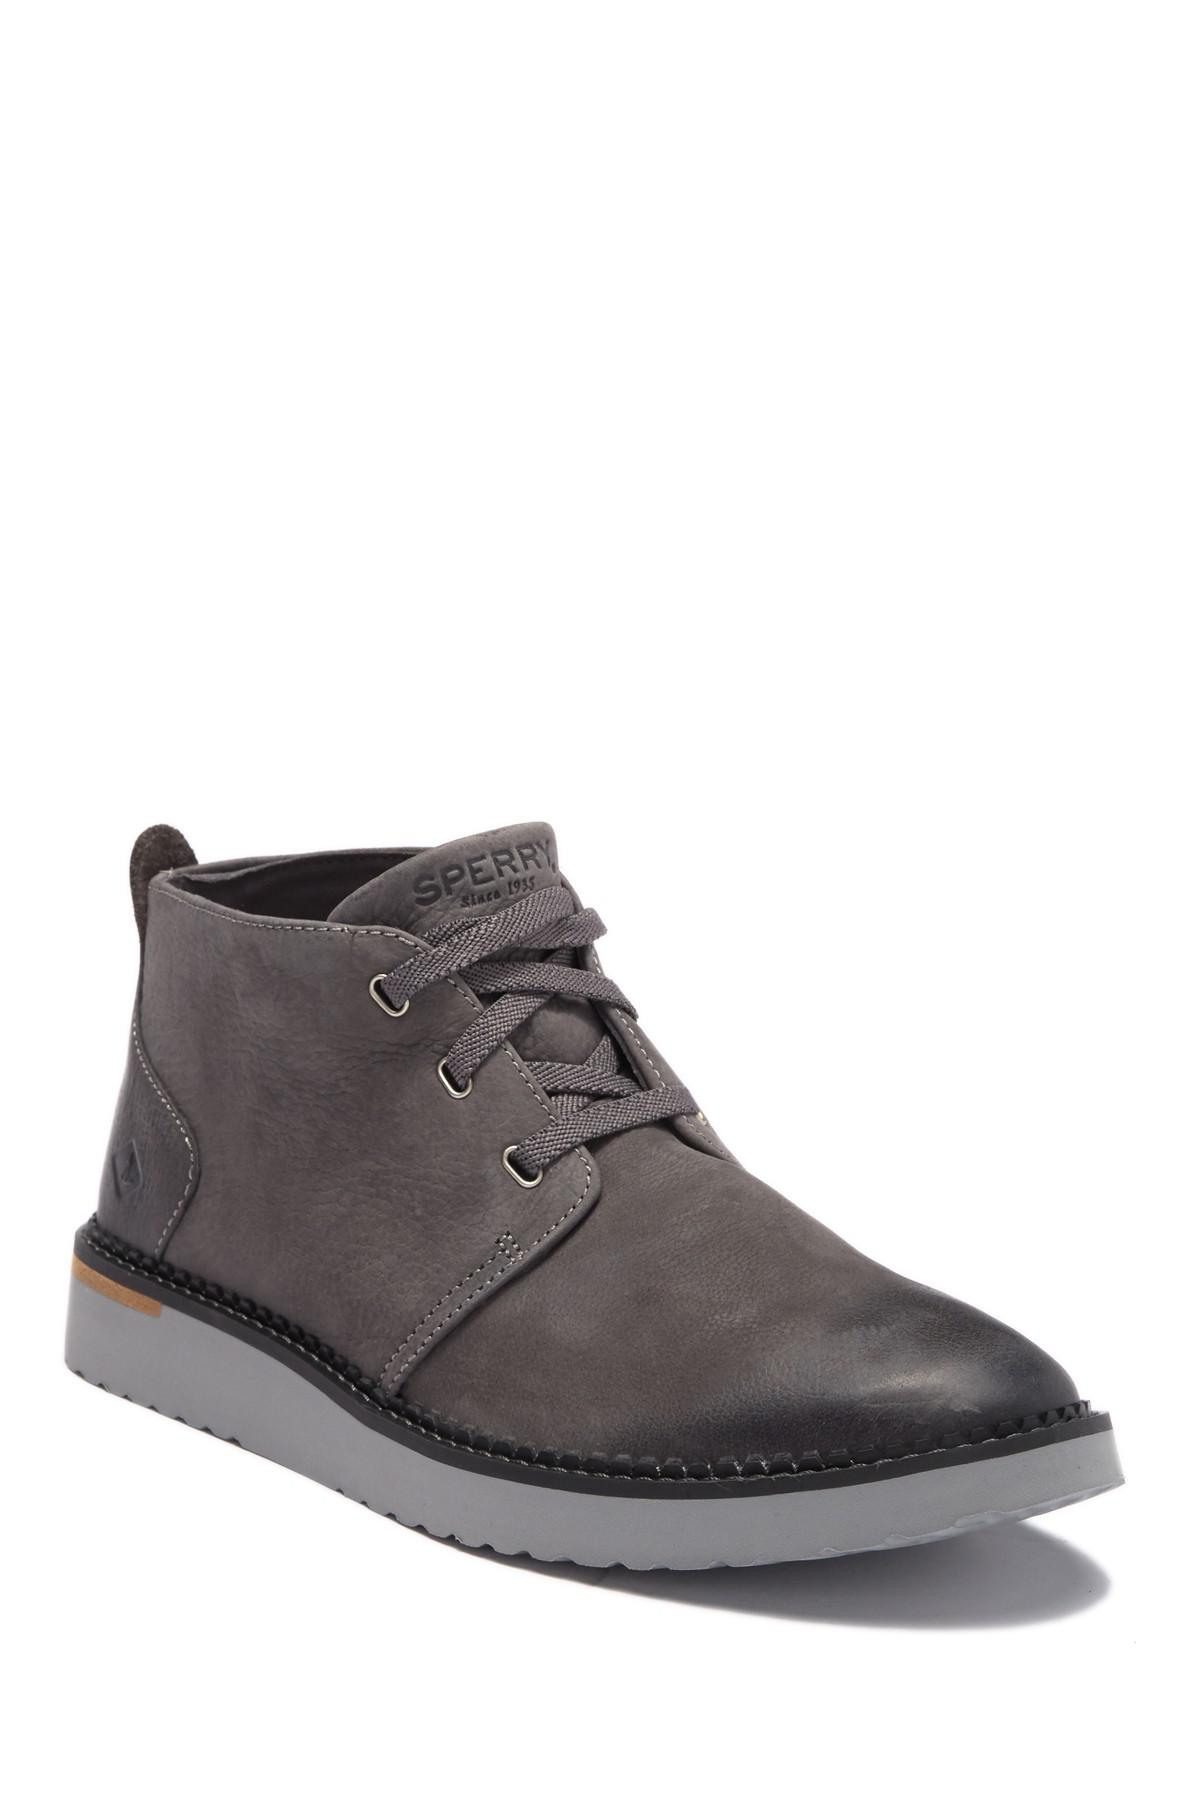 Sperry Top-Sider Leather Camden Oxford